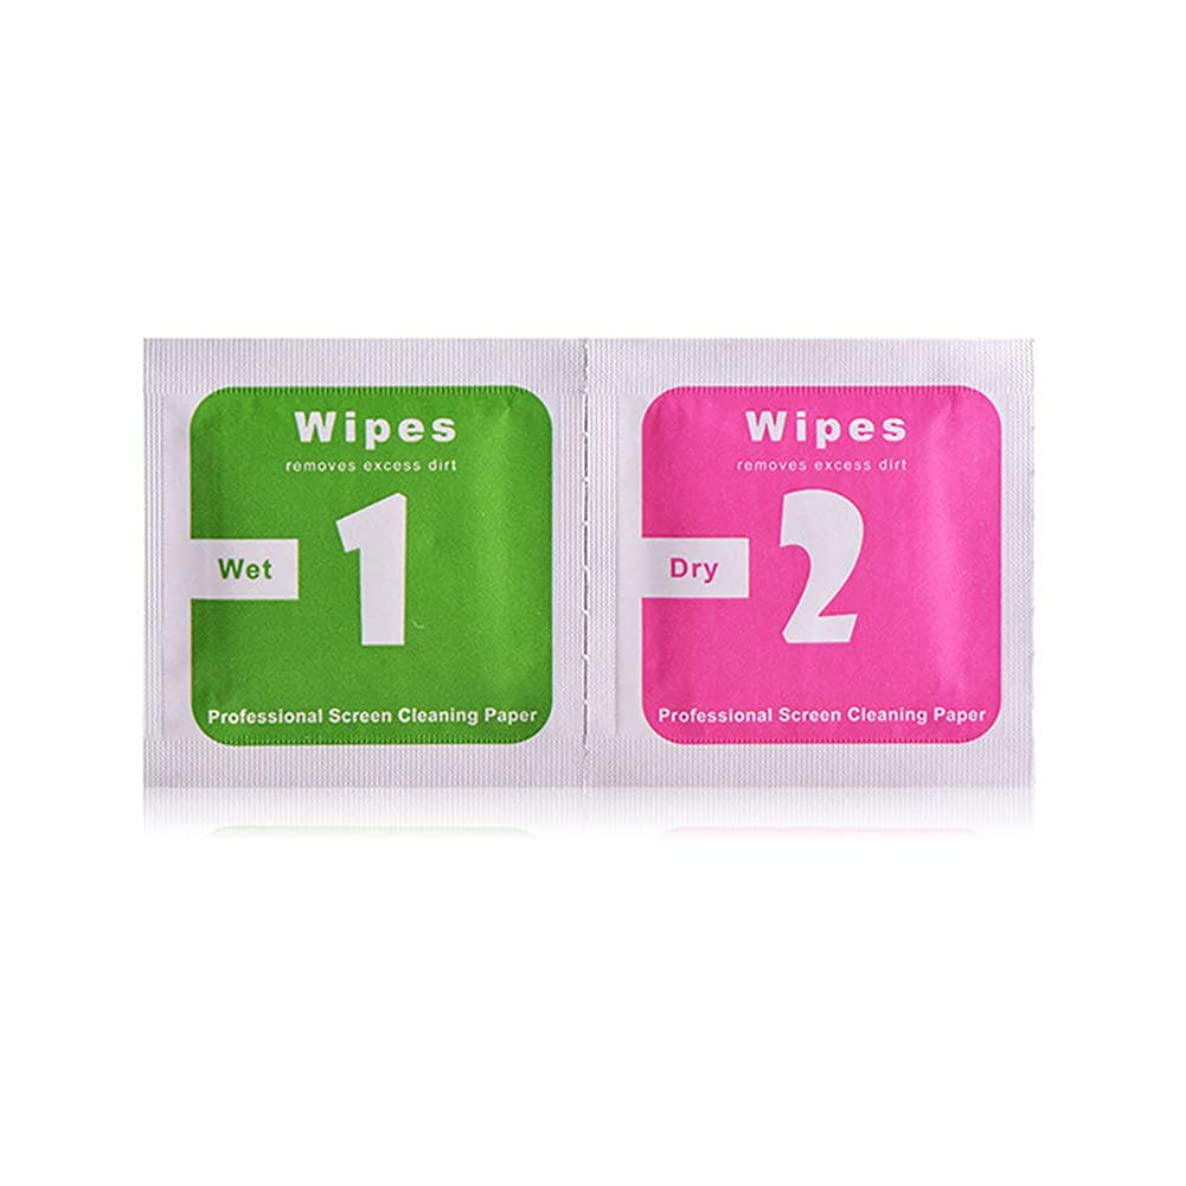 Wet Wipes + Dry Wipes Cleaning Cloth for iPhone 5s 6 6s 7 8 XS Max LCD Screen Protector Tempered Glass Camera Lens Dust Remover Papers (100)